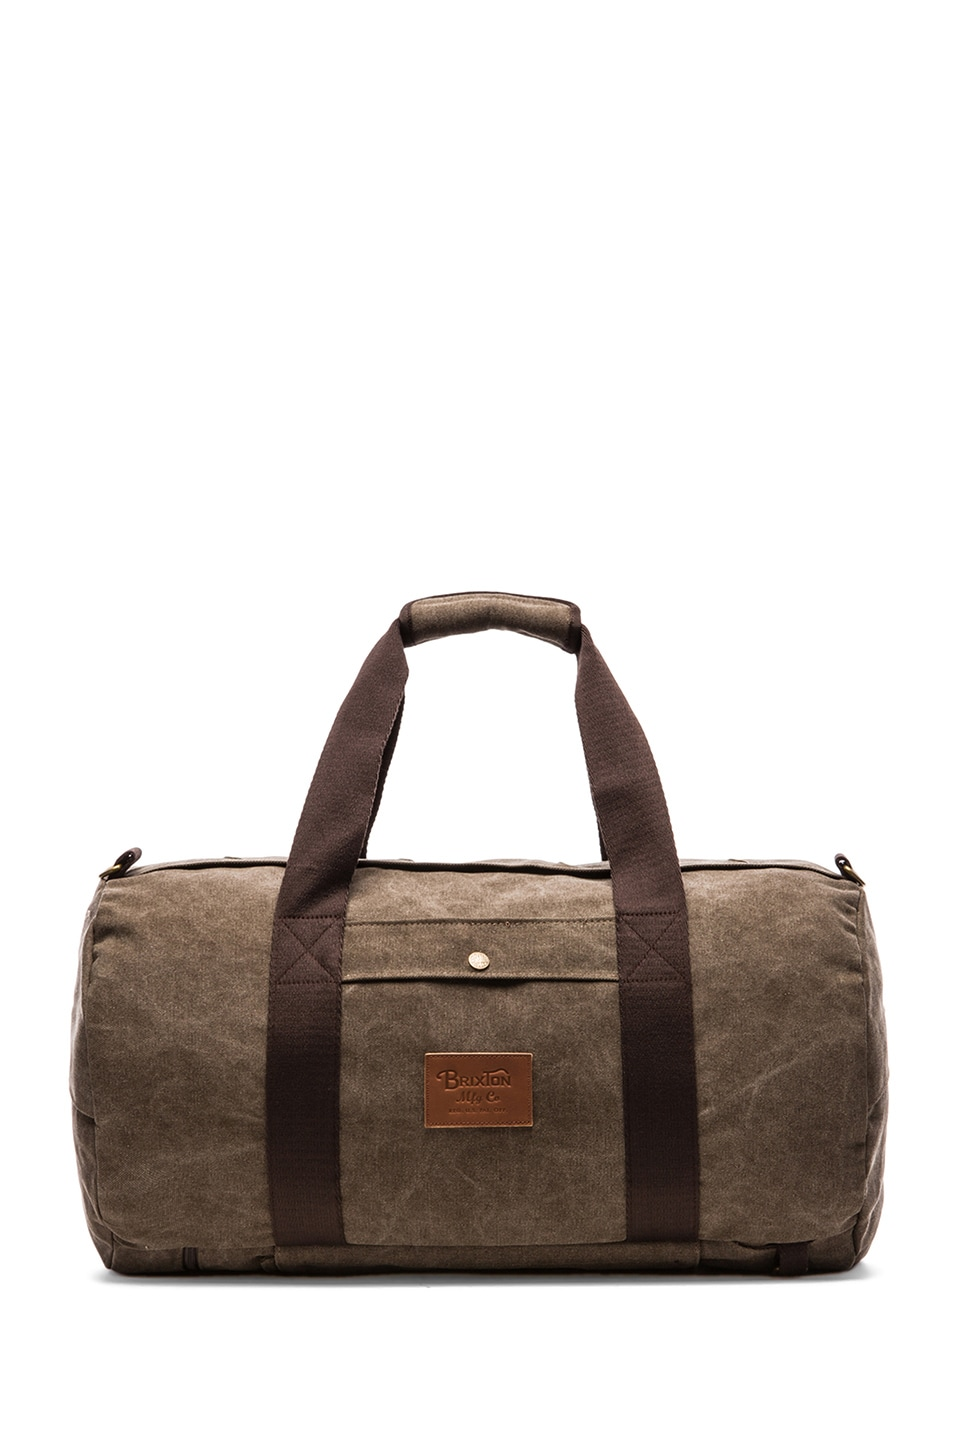 Brixton Bixby Duffle Bag in Taupe